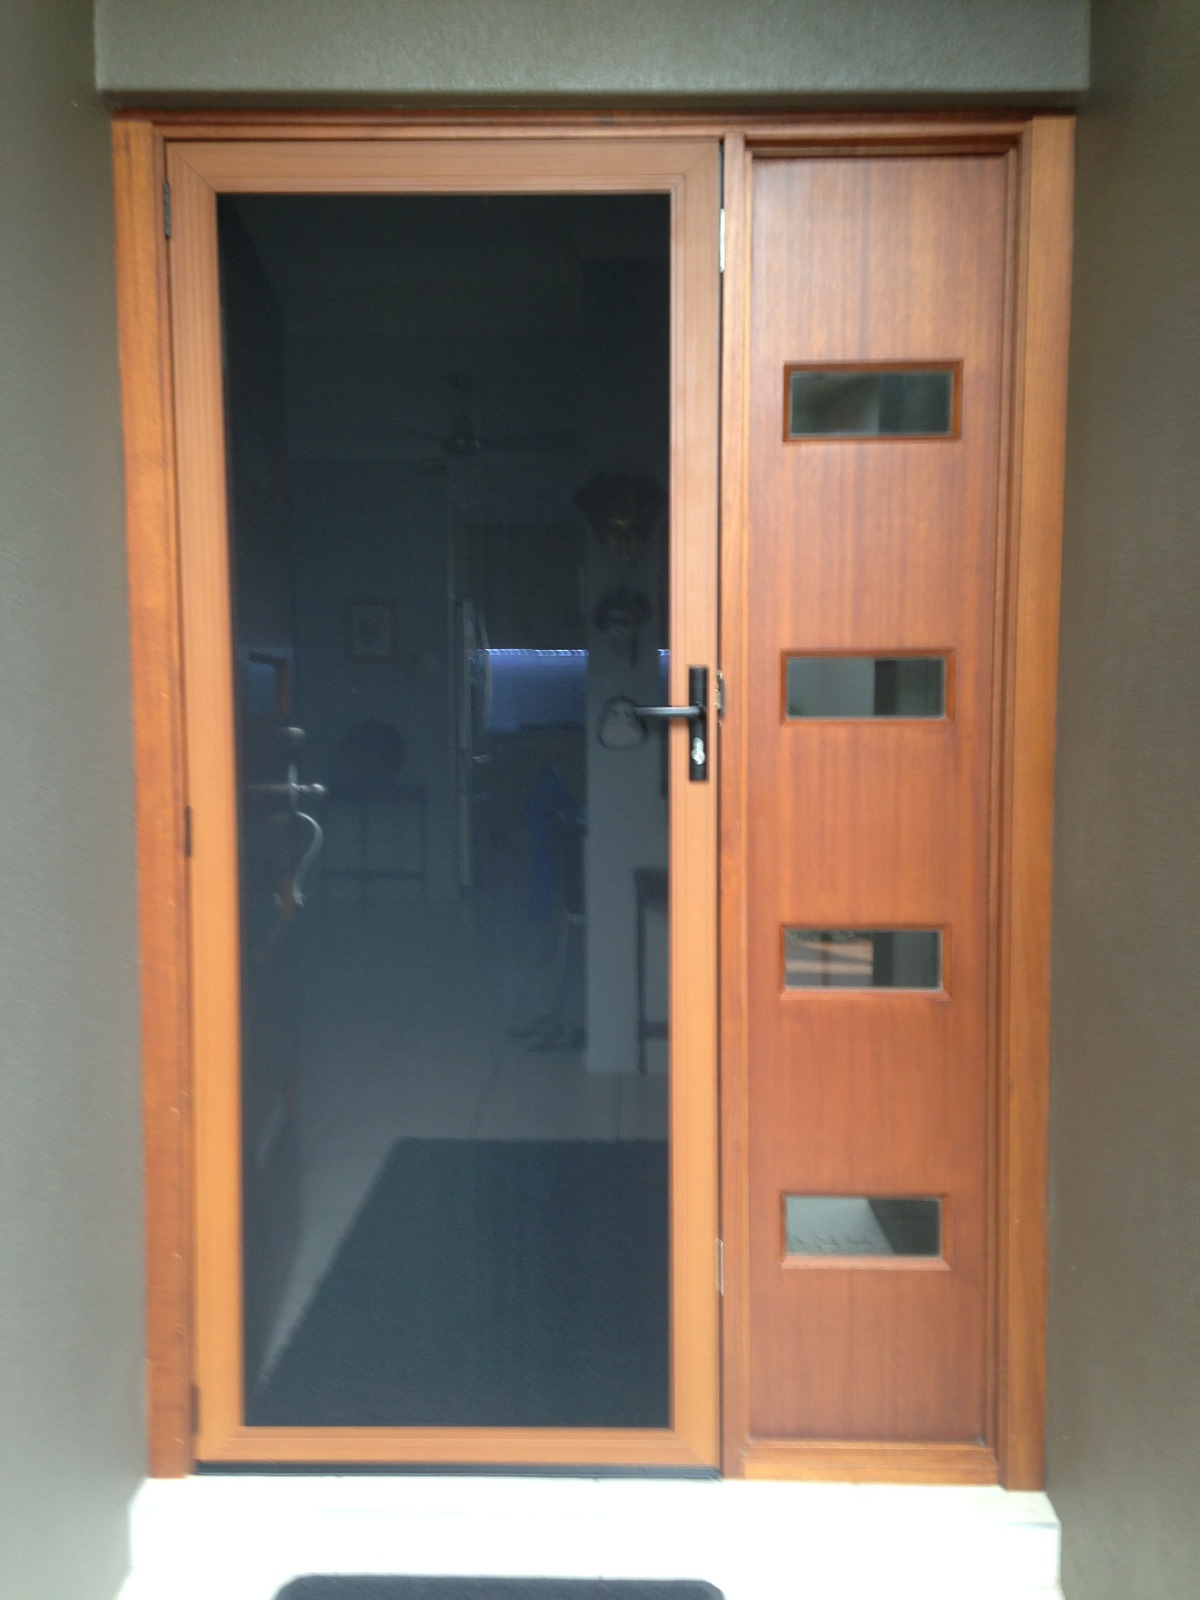 SecureView with Timber Look Frame